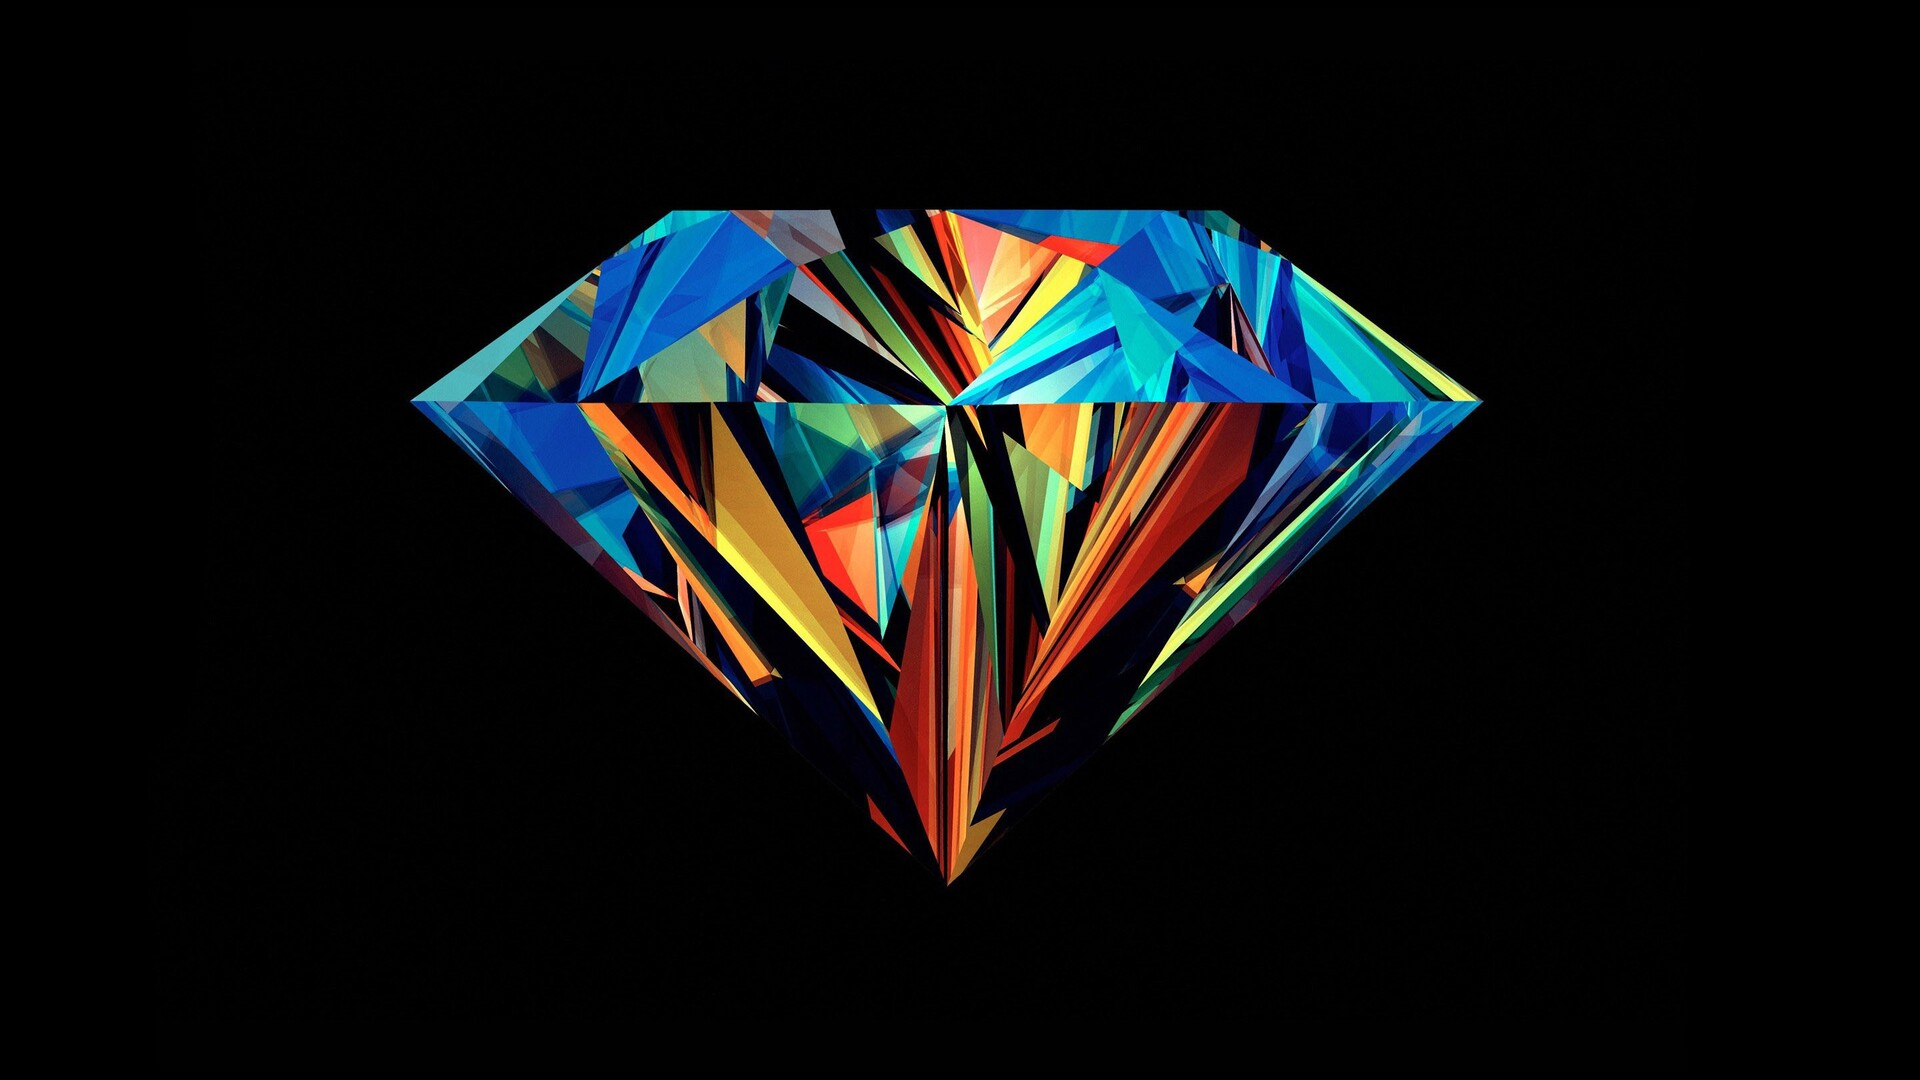 1920x1080 Diamond Abstract Laptop Full Hd 1080p Hd 4k Wallpapers